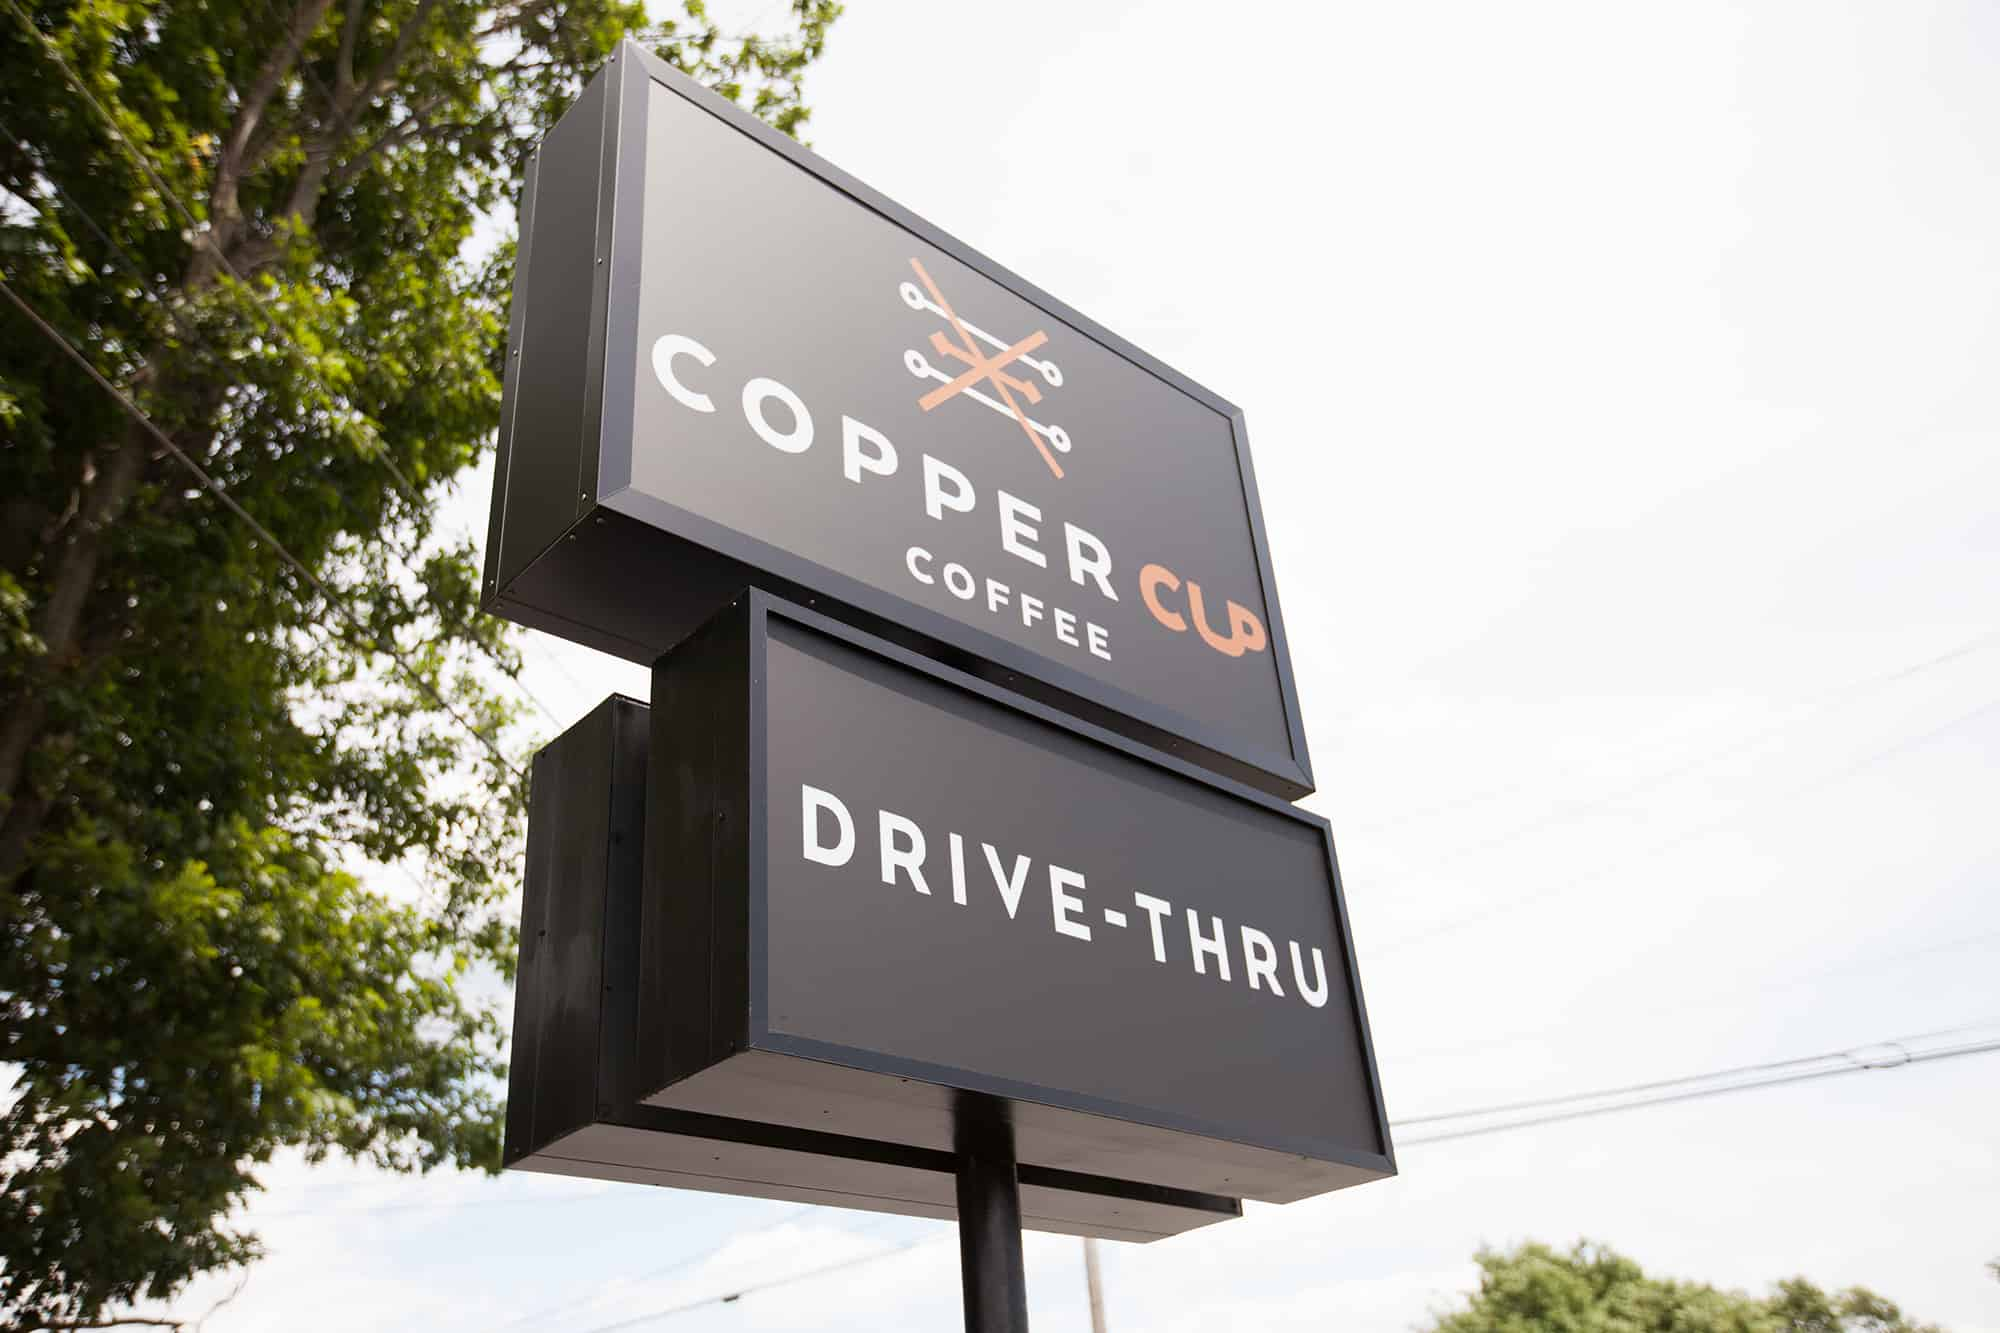 Copper Cup Coffee Company restaurant and cafe branding and concept development